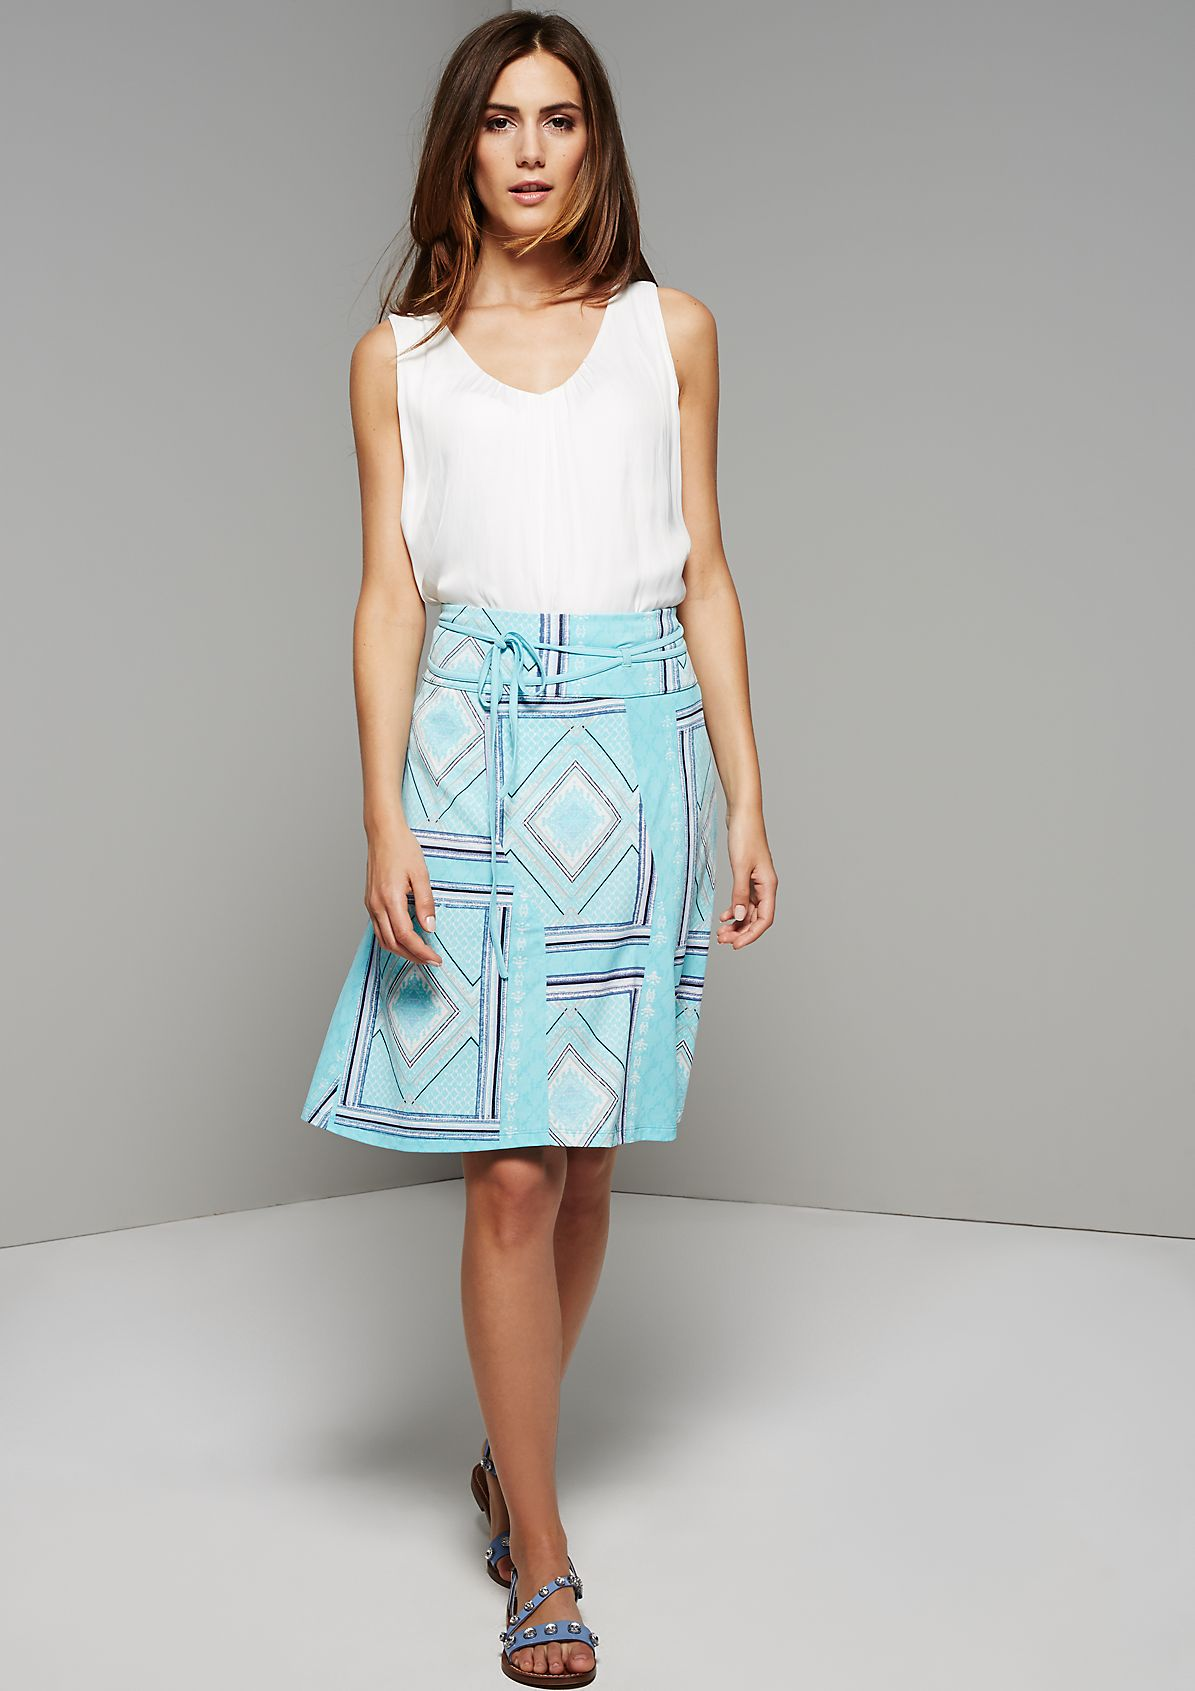 Lightweight summer skirt with a pattern from s.Oliver